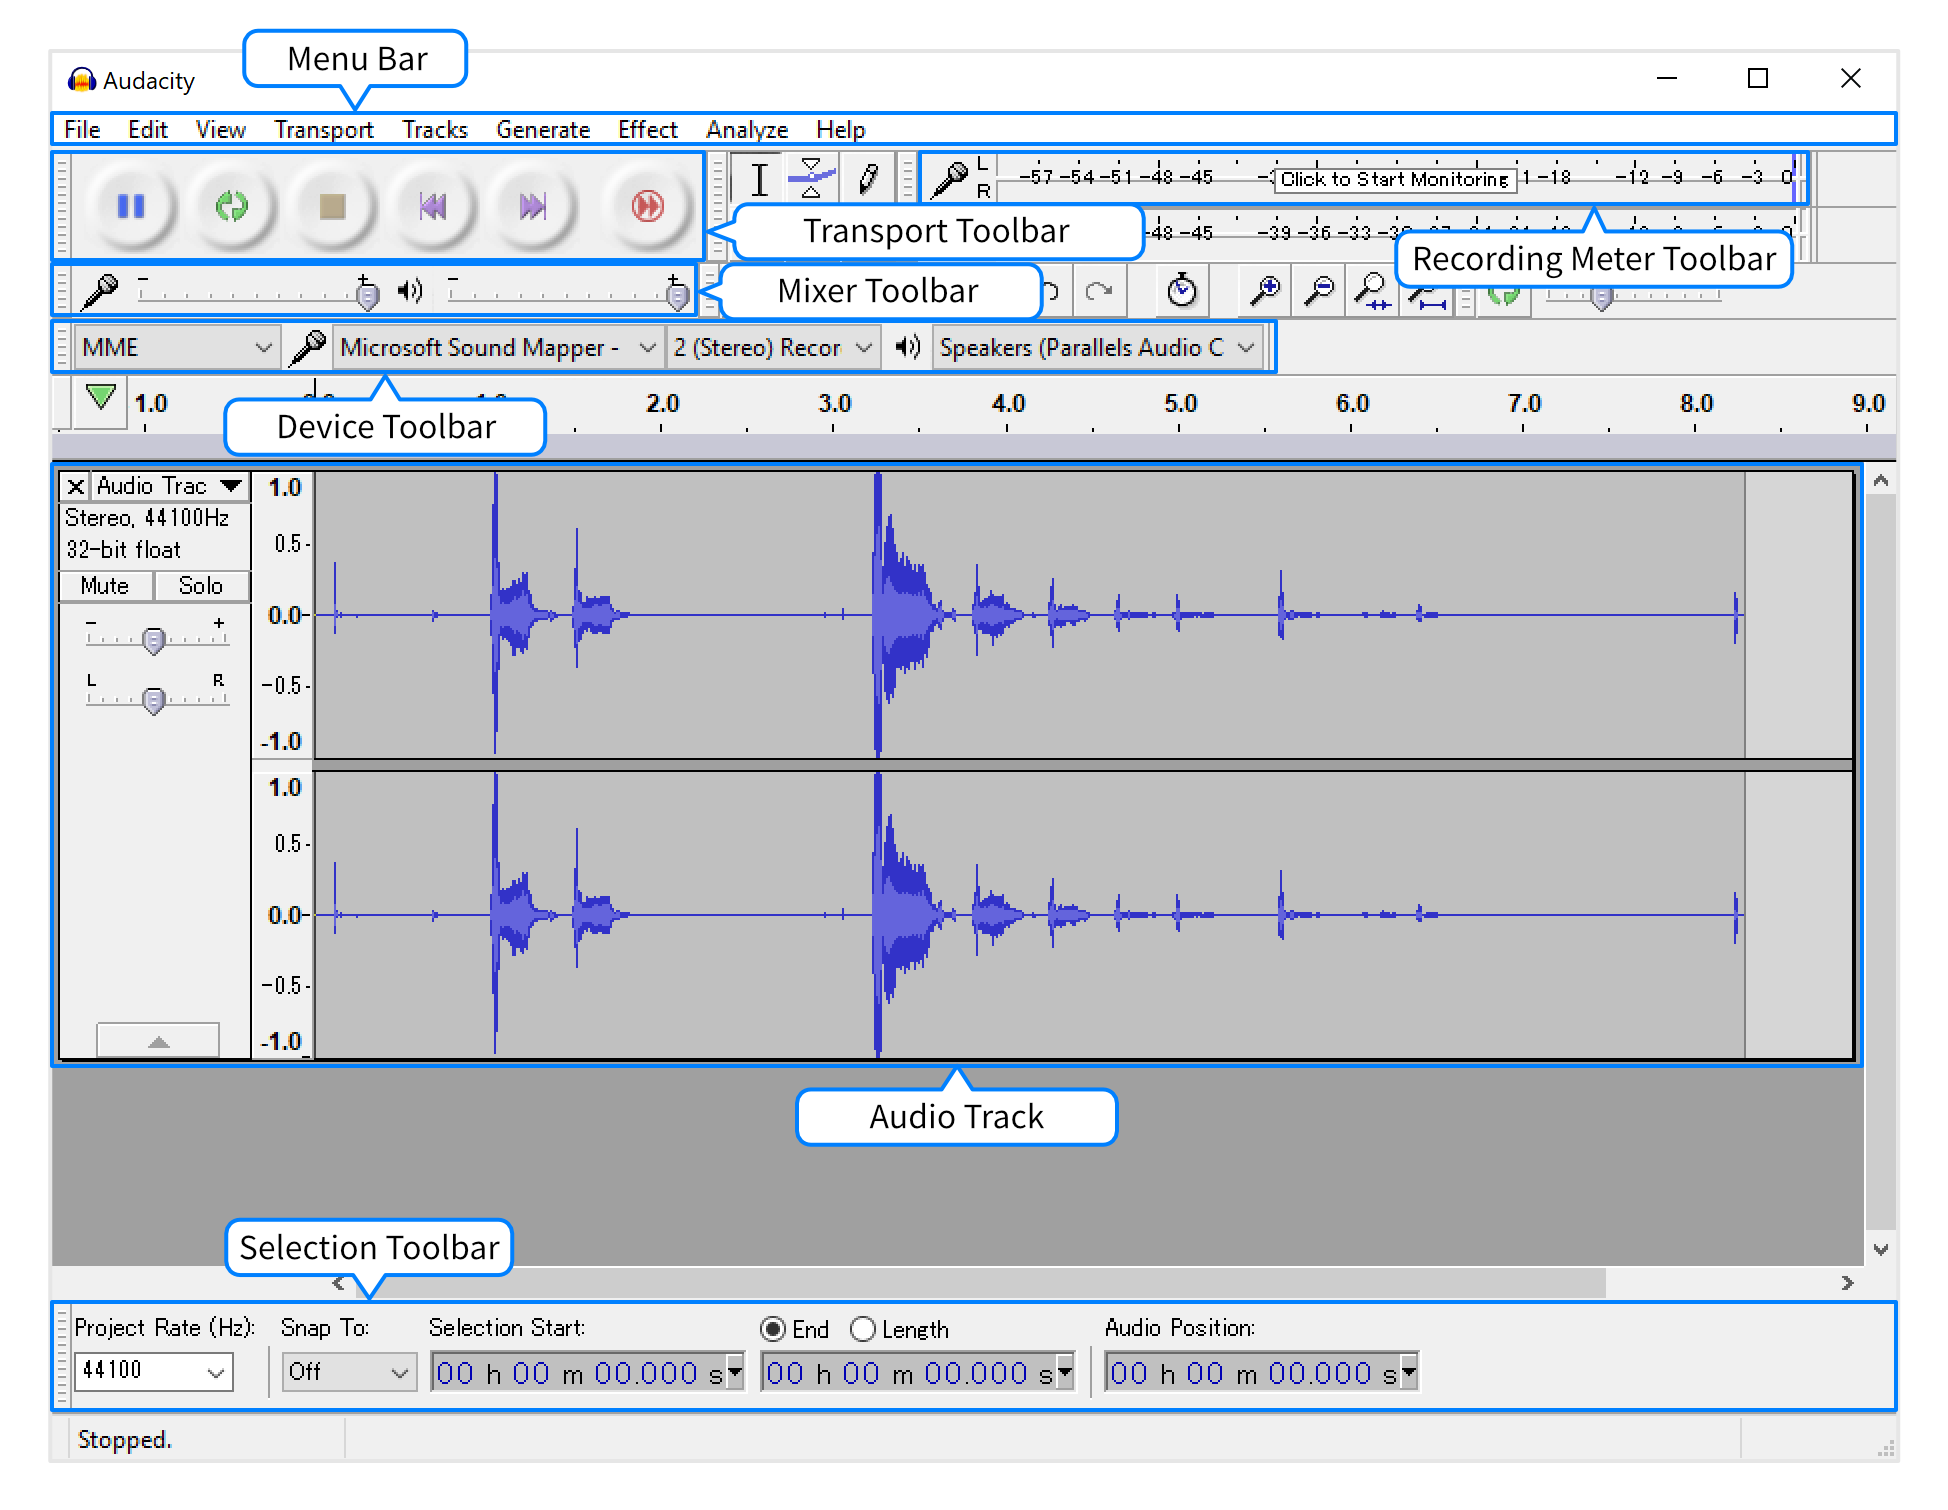 Audacity Project Window screen section names